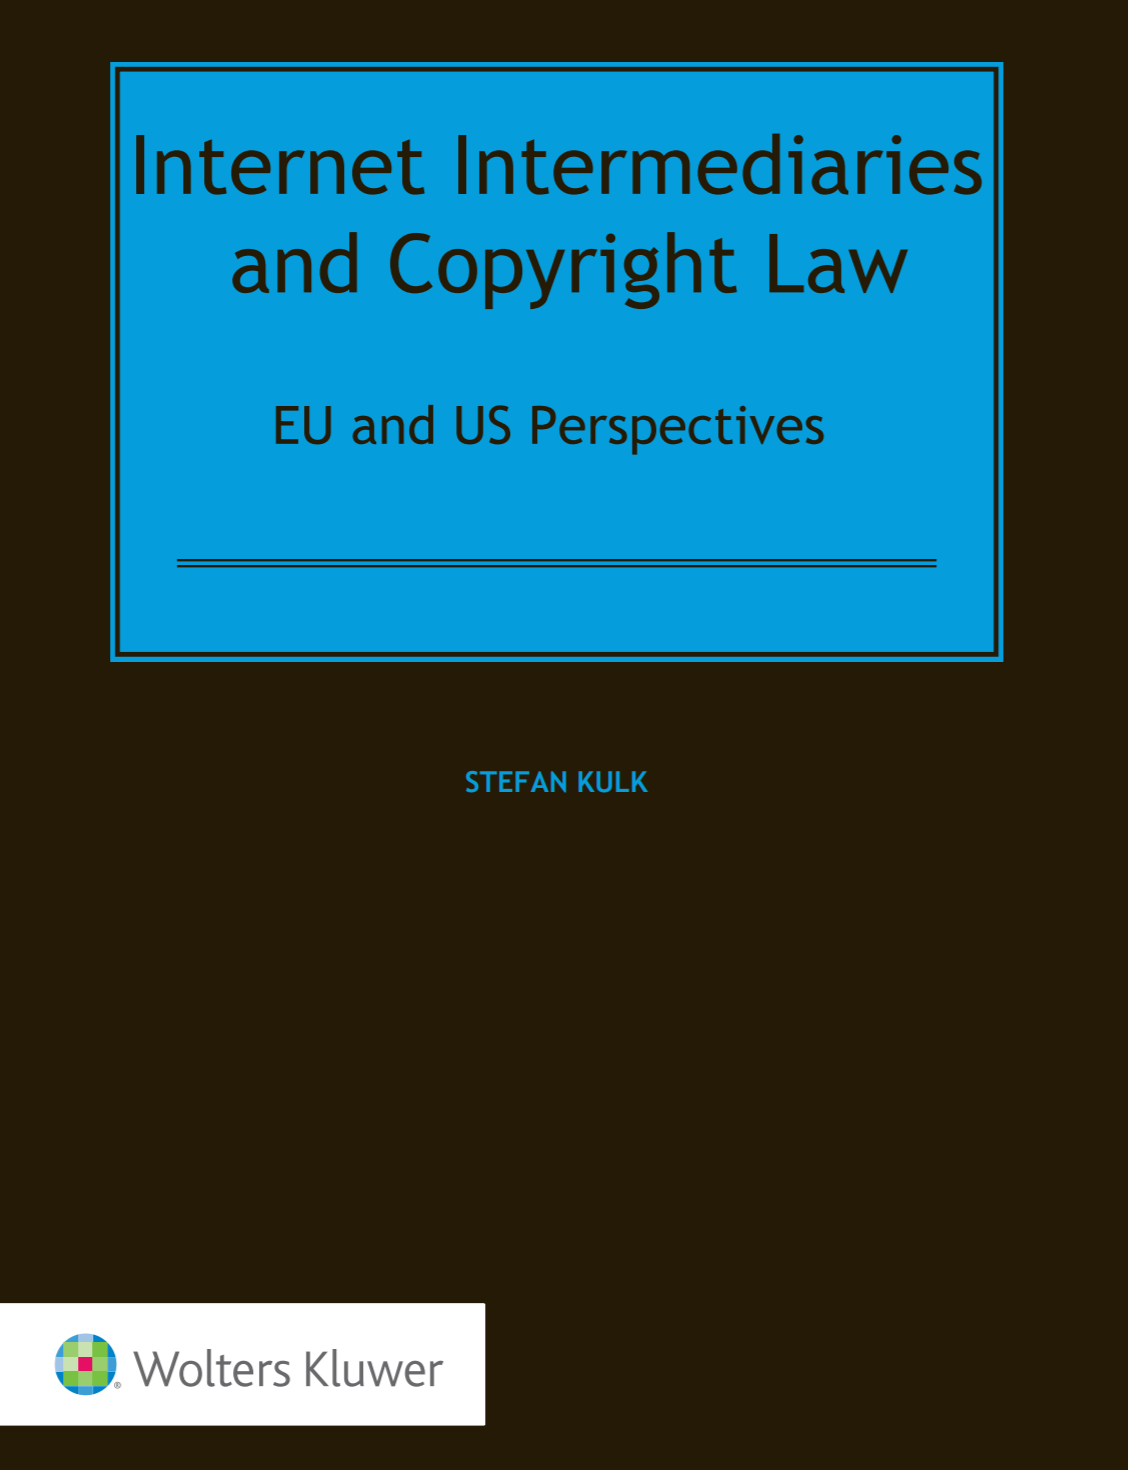 https://lrus.wolterskluwer.com/store/product/internet-intermediaries-and-copyright-law-eu-and-us-perspectives/